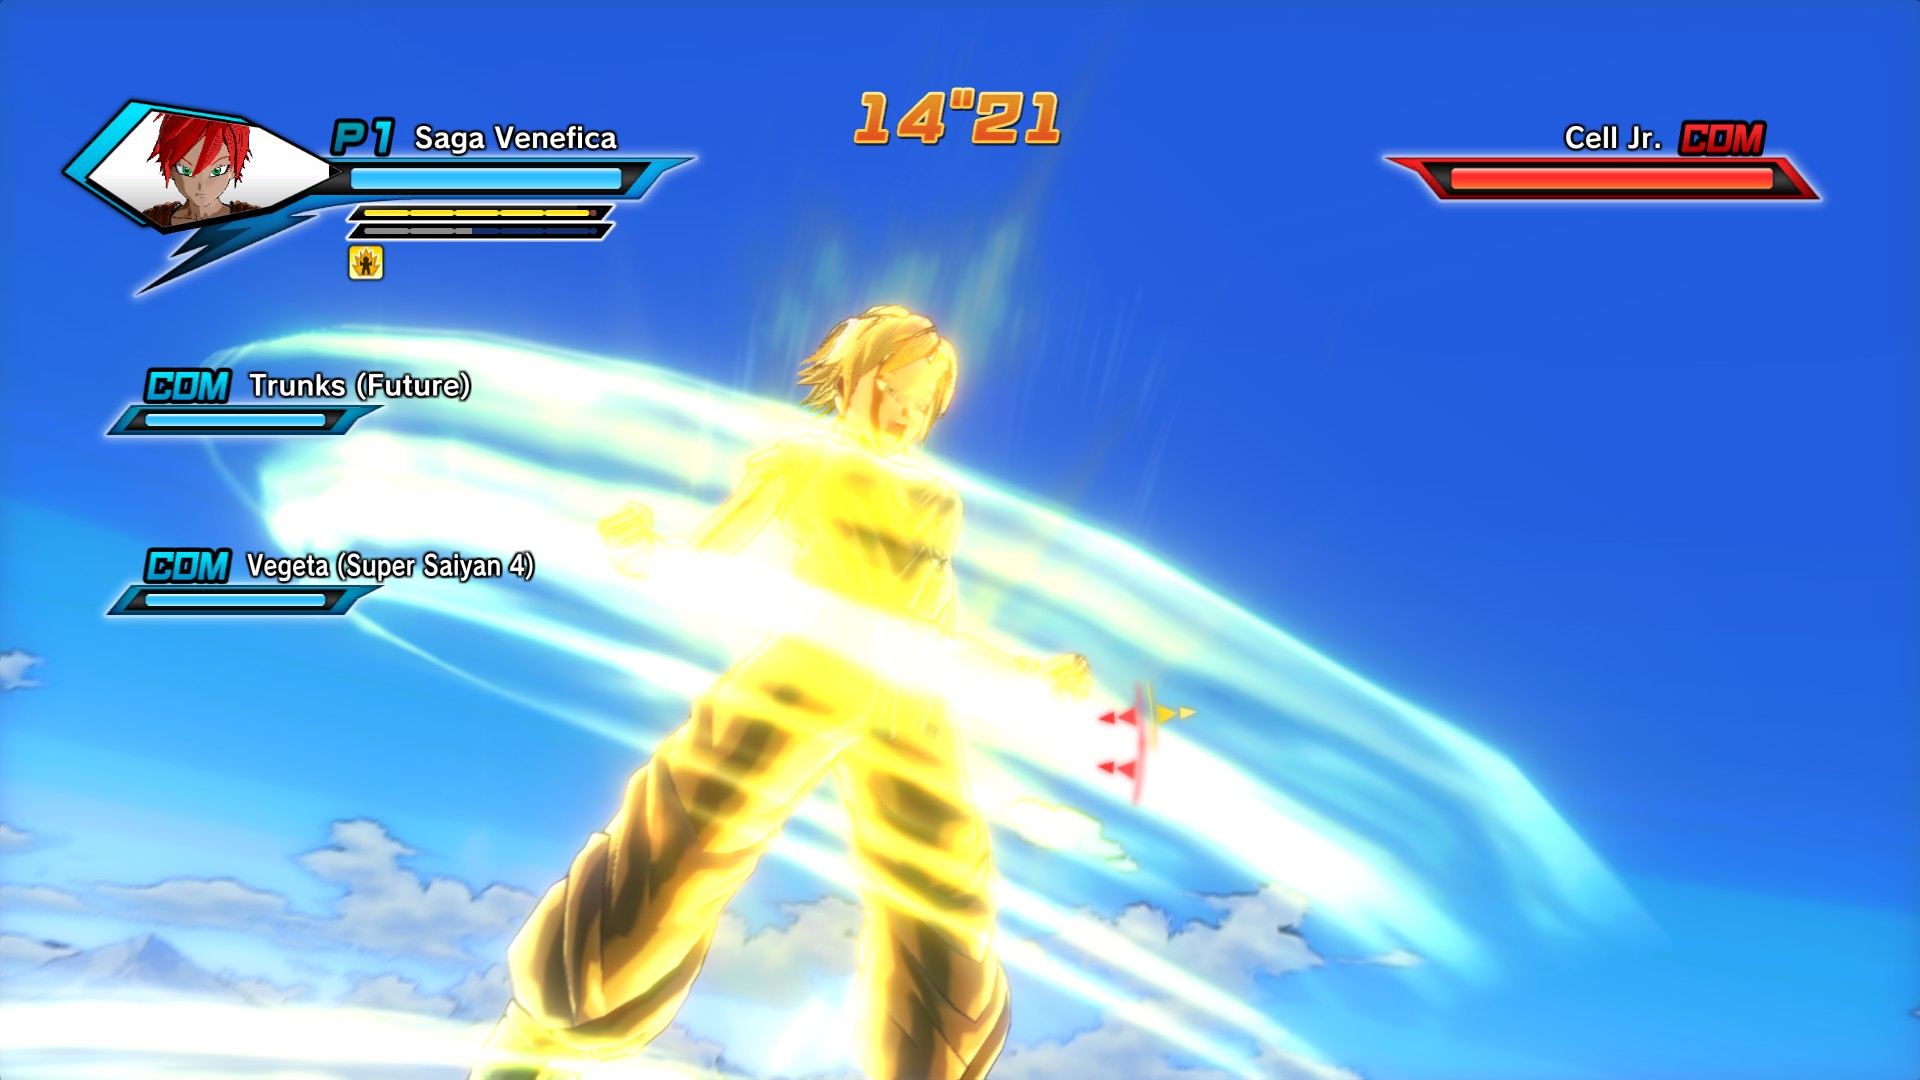 Going Super Saiyan, one of the game's thrills.